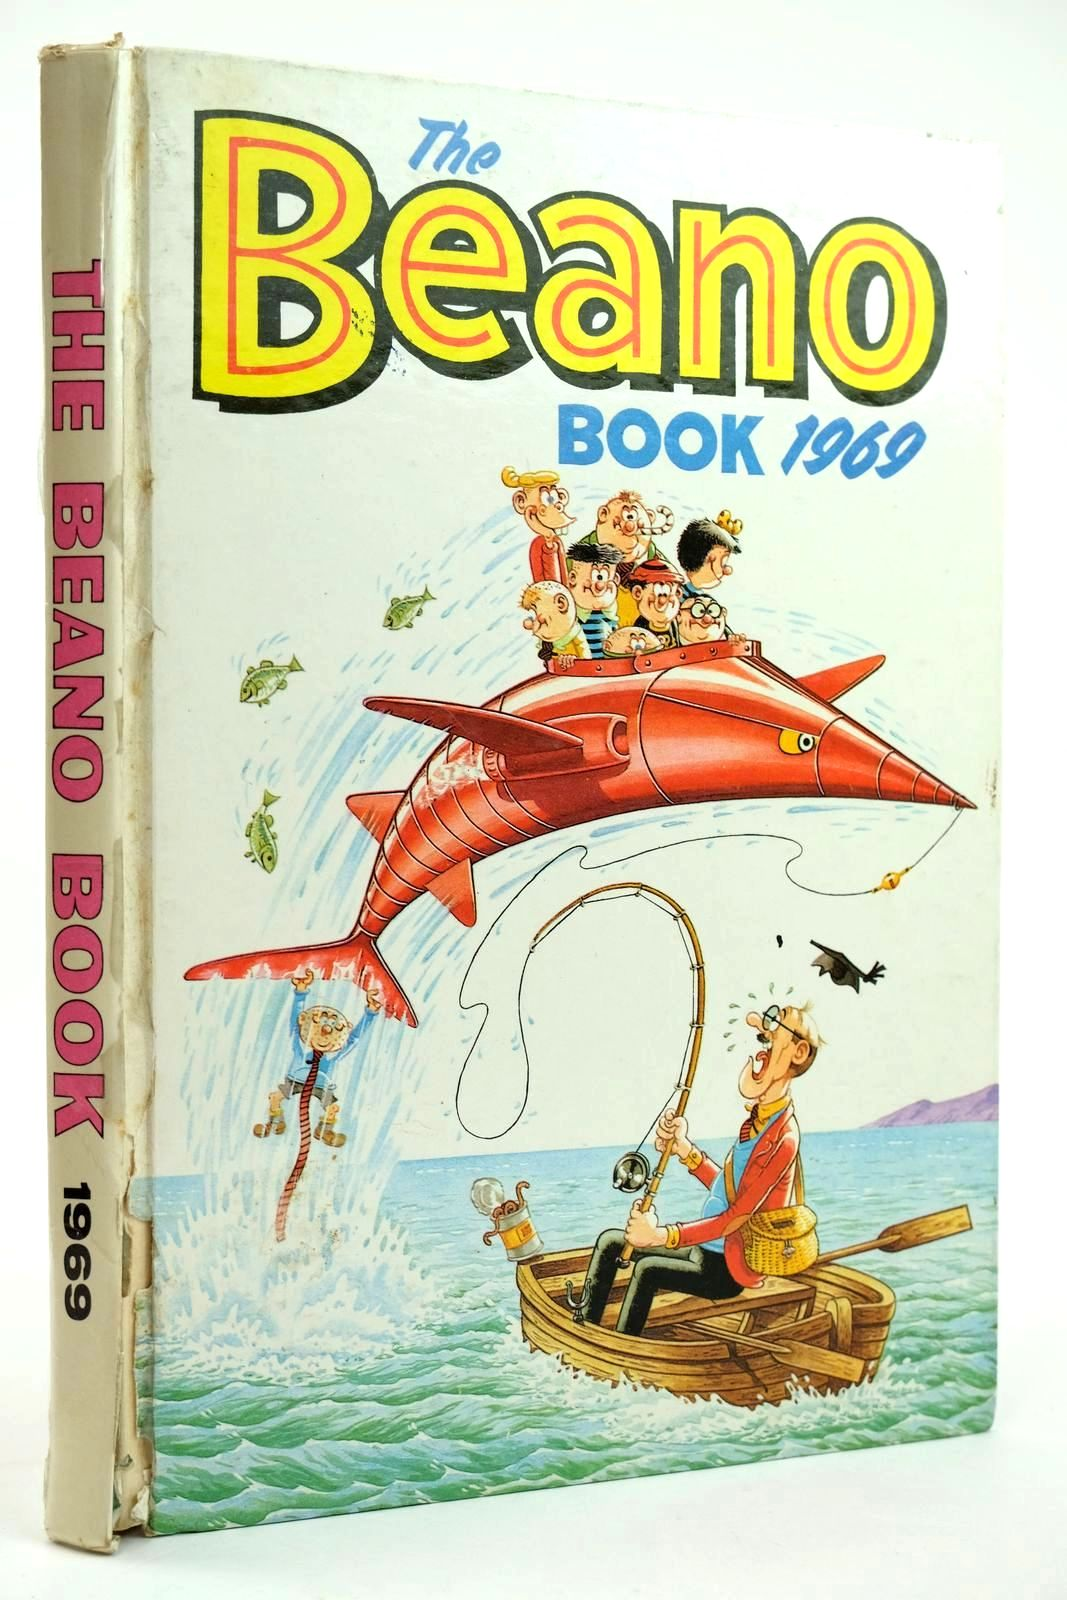 Photo of THE BEANO BOOK 1959- Stock Number: 2131960